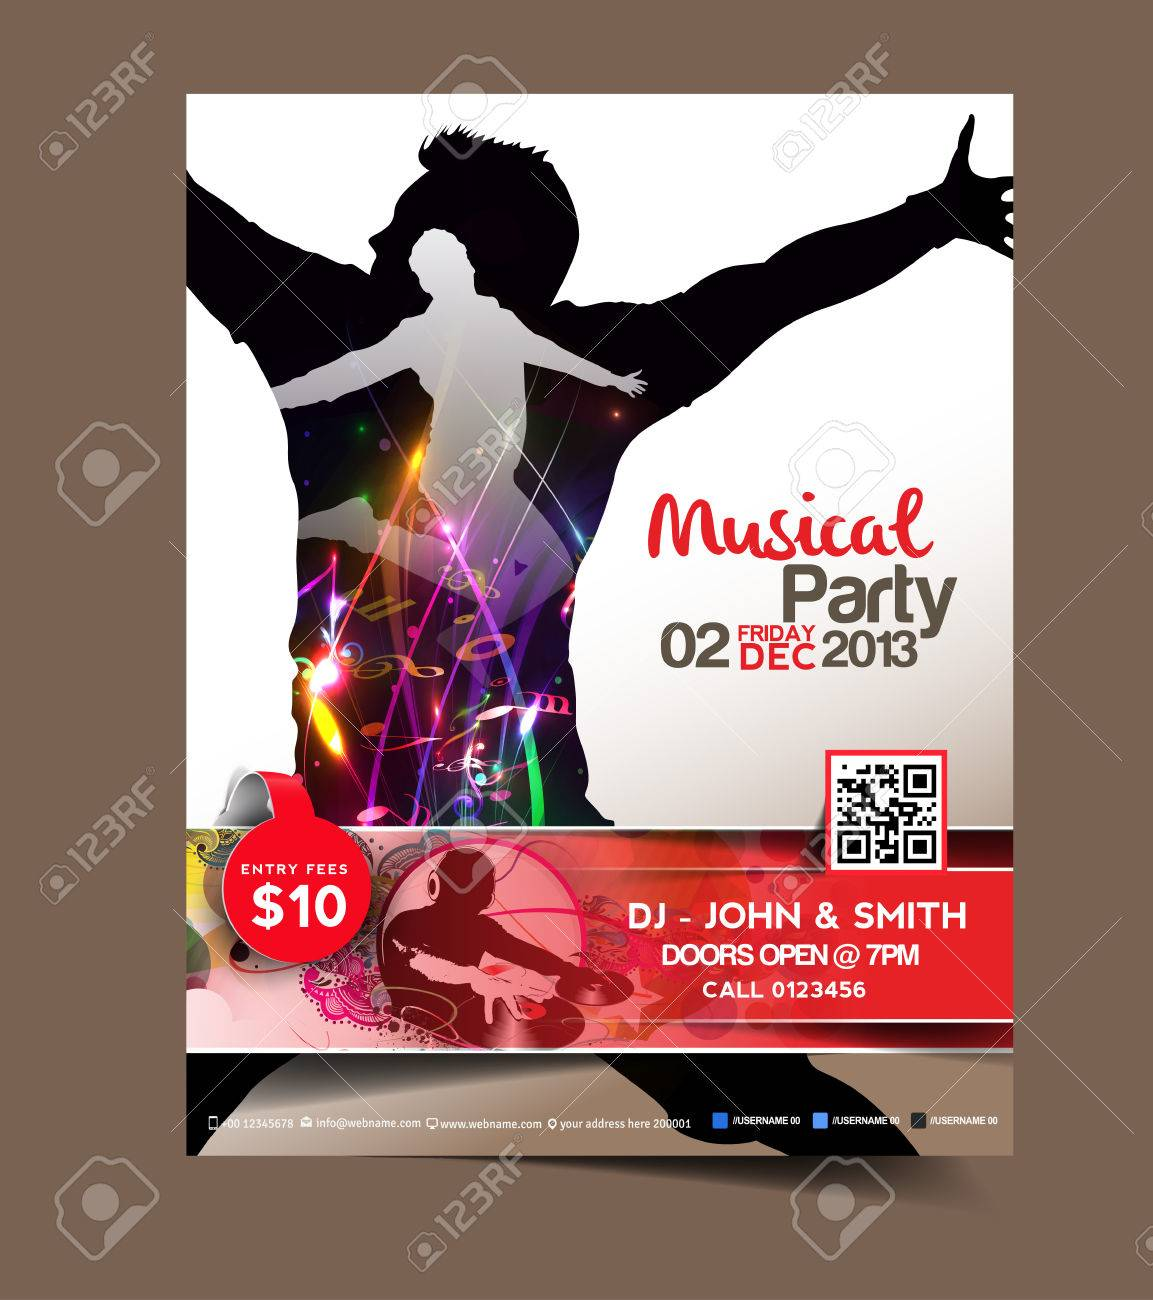 music party flyer poster template design royalty cliparts music party flyer poster template design stock vector 26573236